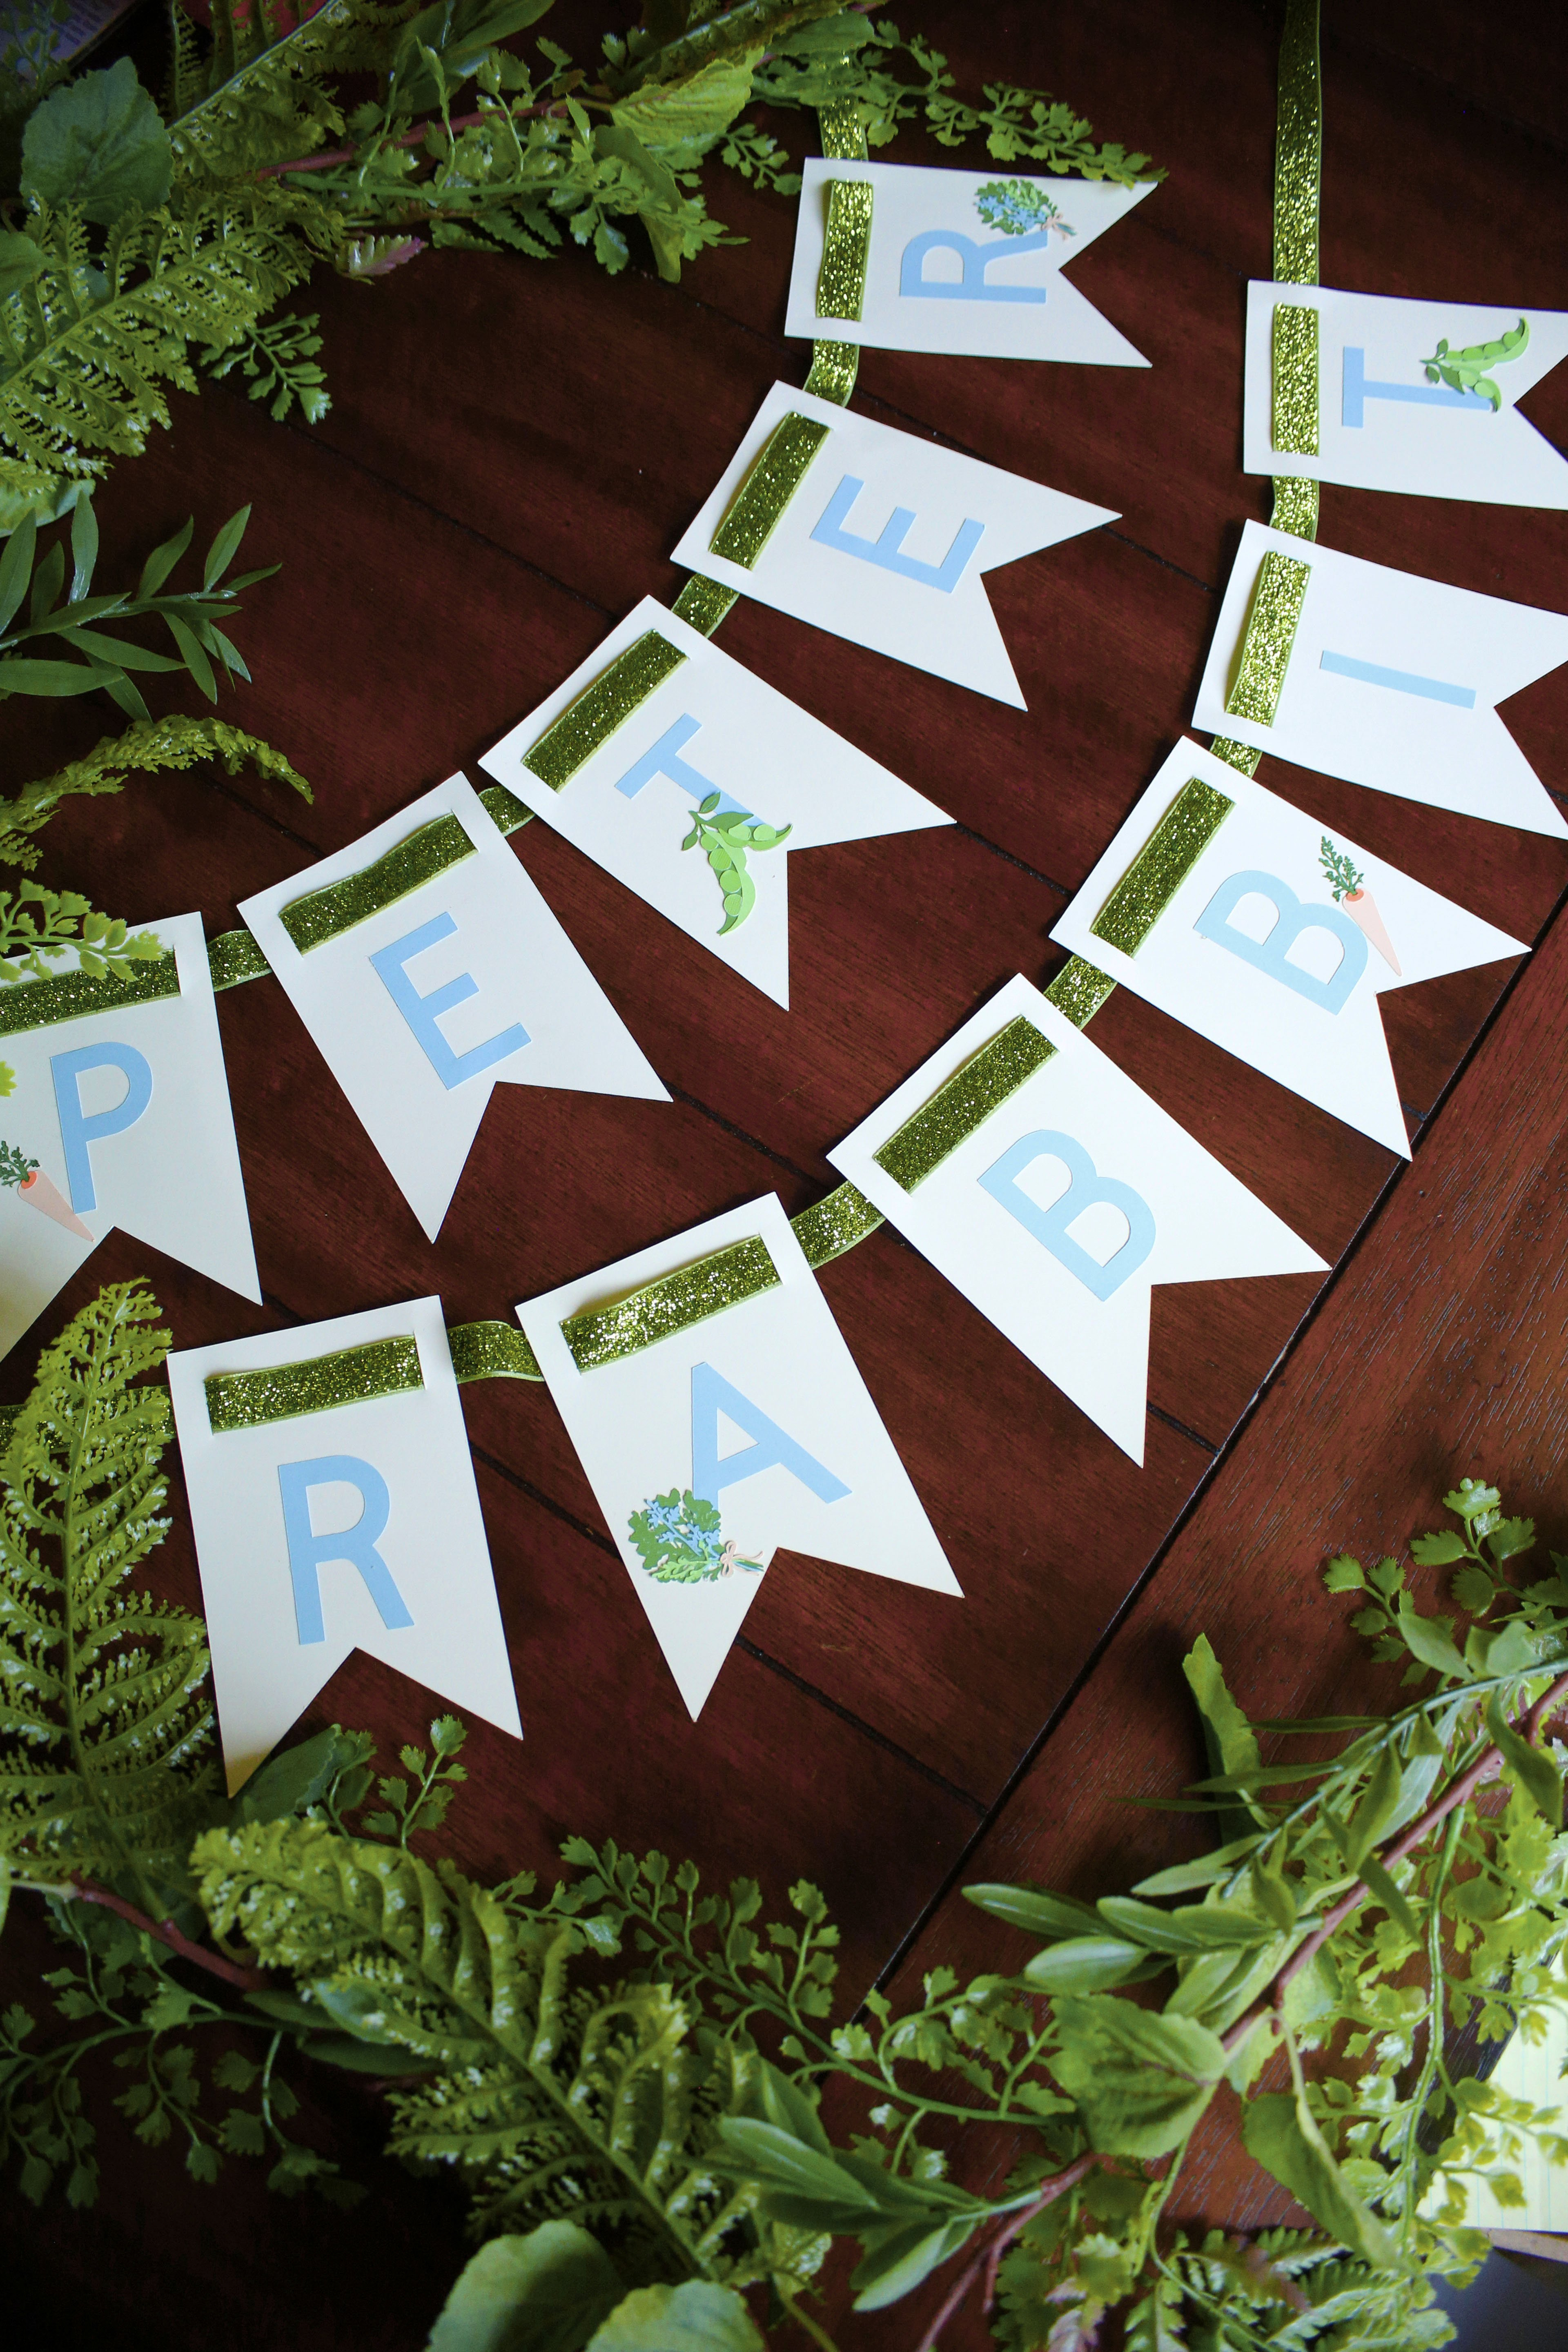 Planning a Peter Rabbit party?  Follow this easy tutorial to make an adorable Peter Rabbit banner using a Cricut Maker.